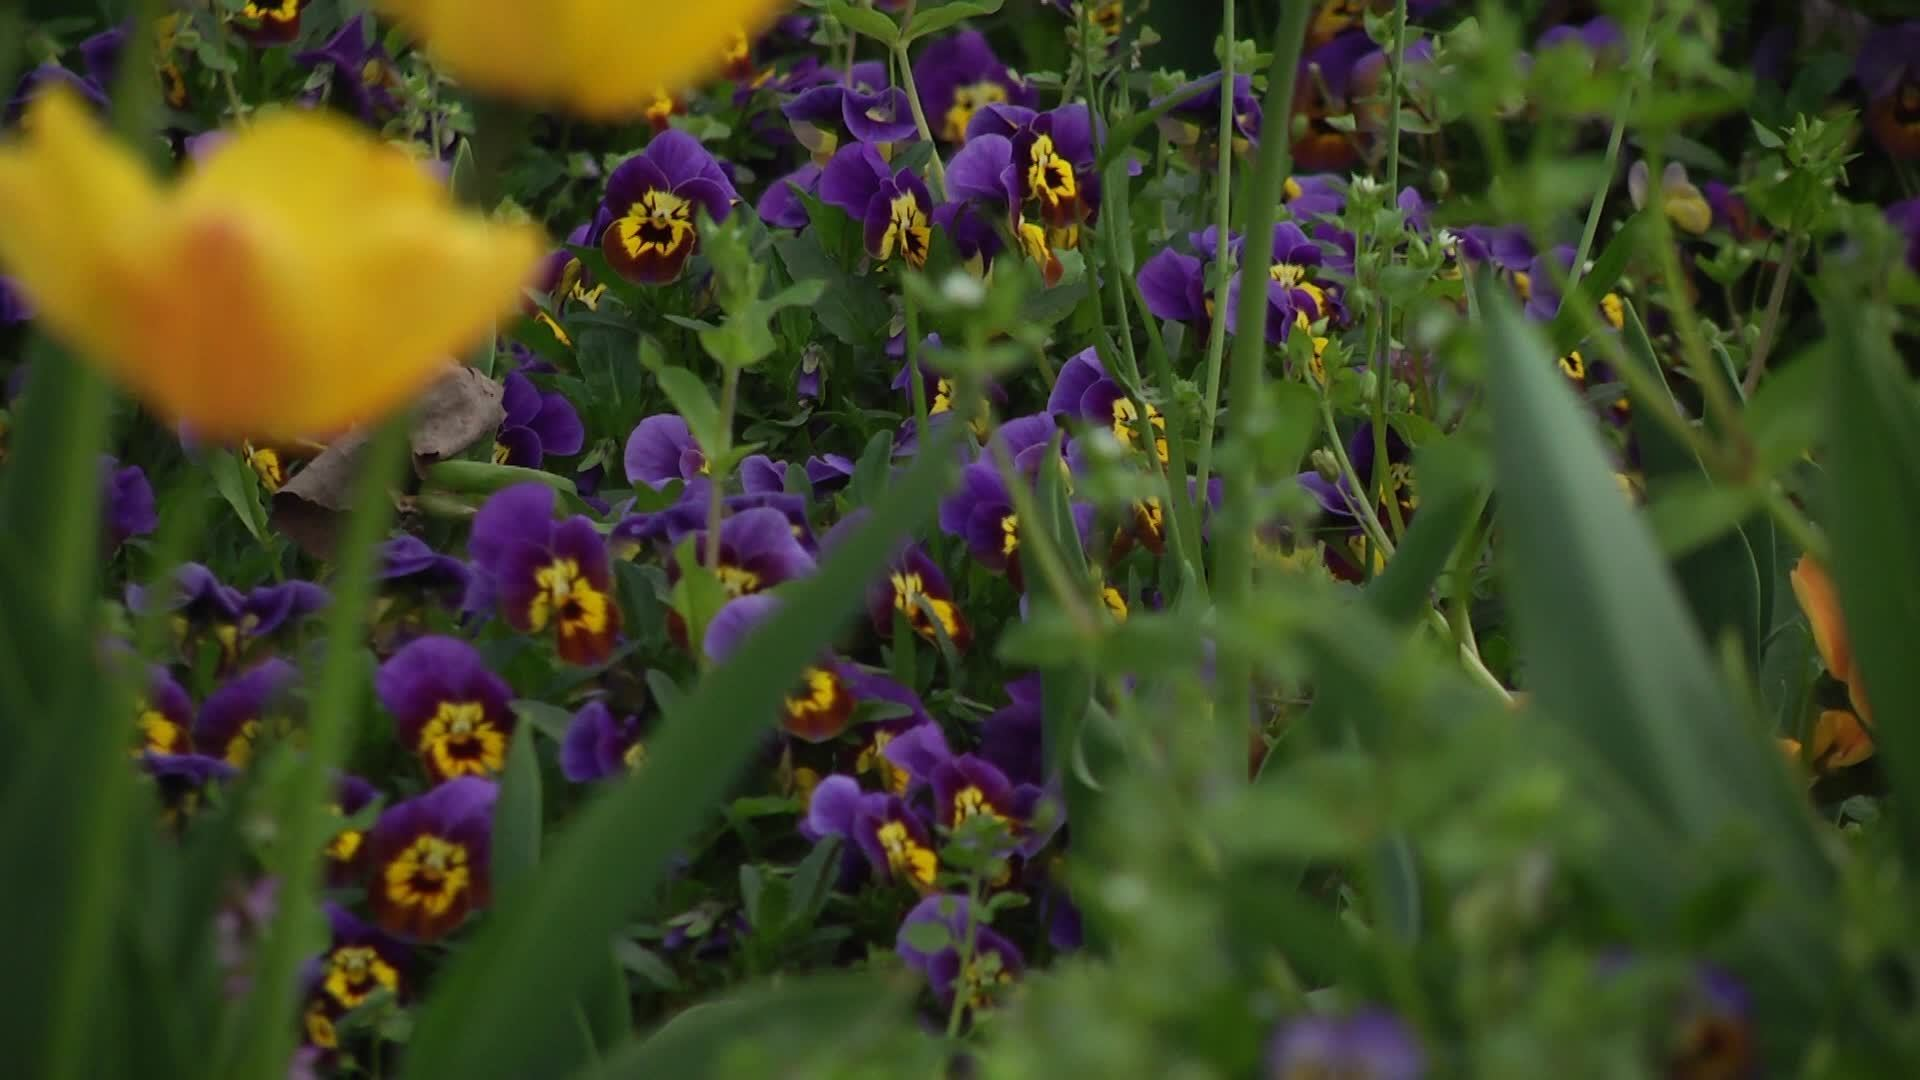 Garden With Flowers Free Hd Video Clips Stock Video Footage At